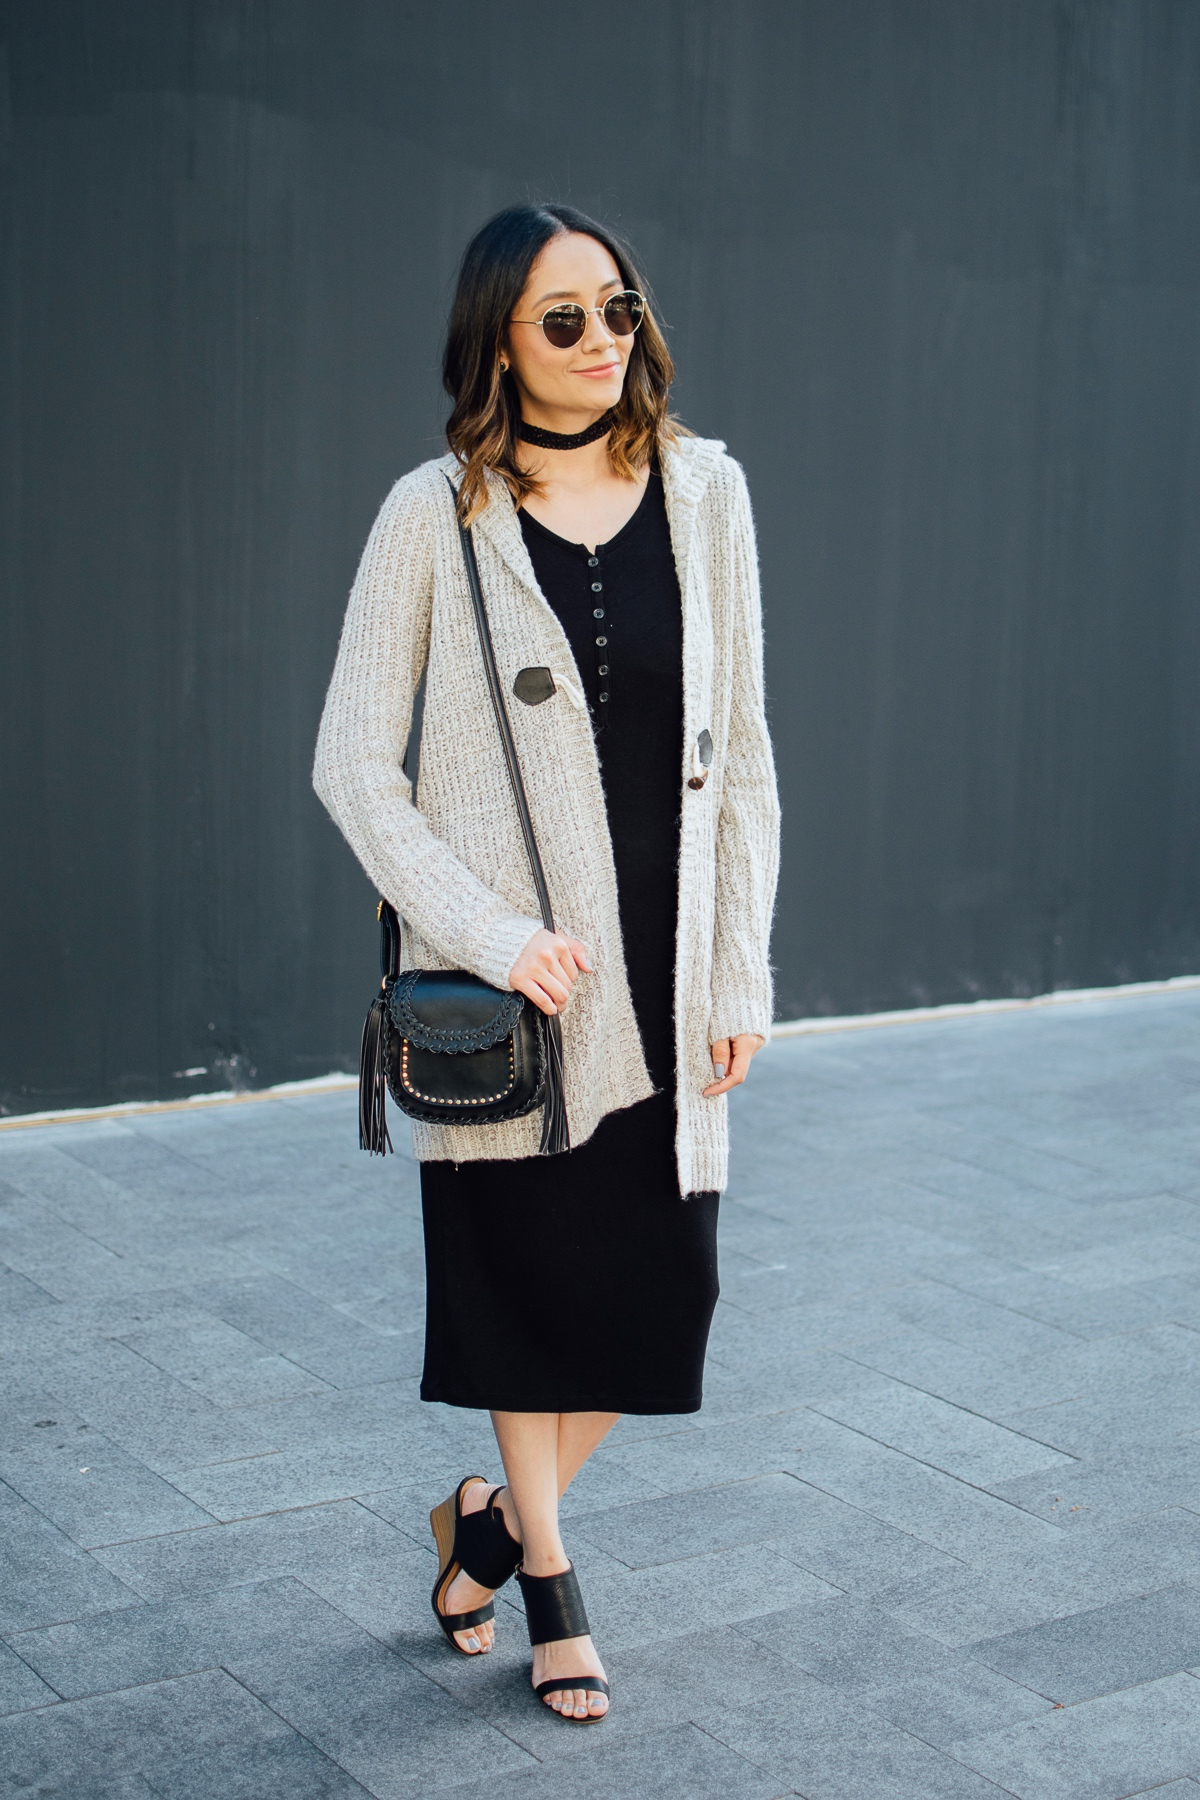 Style blogger Lilly Beltran of Daily Craving in a Fall look with a black knit dress, midi cardigan and velvet choker